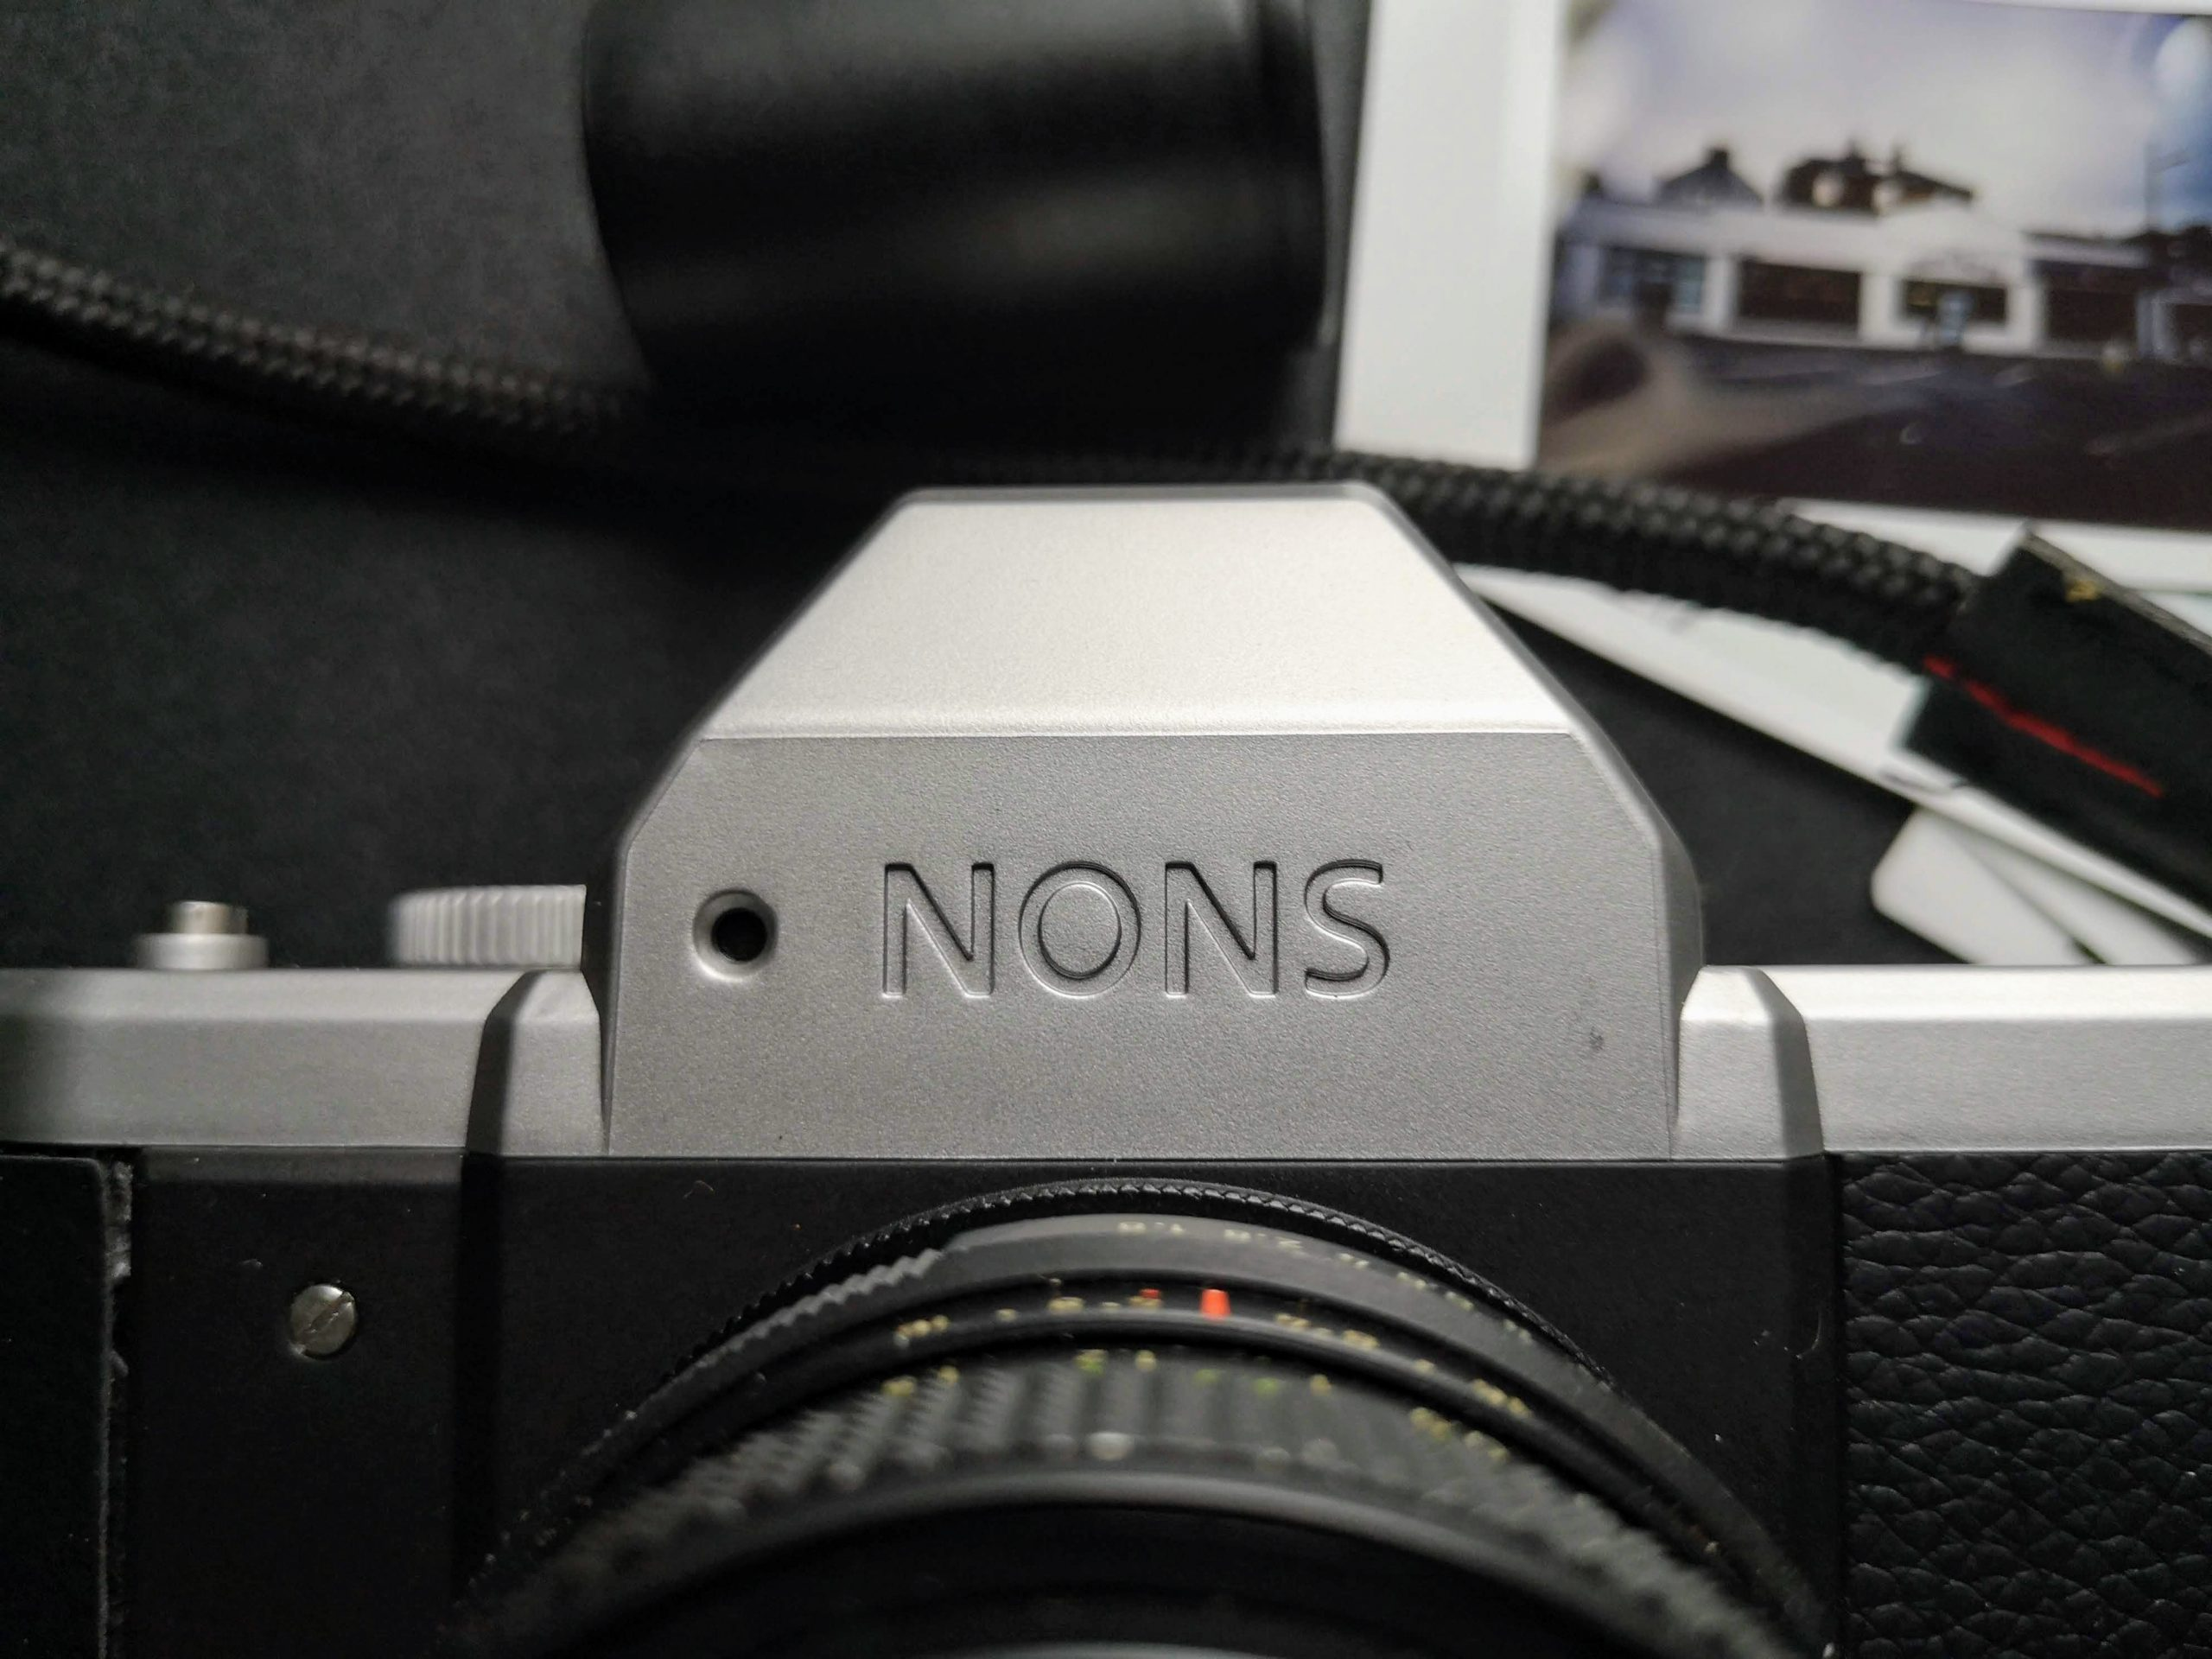 Nons SL42 Upper front with Pentaprism hump with meter on front